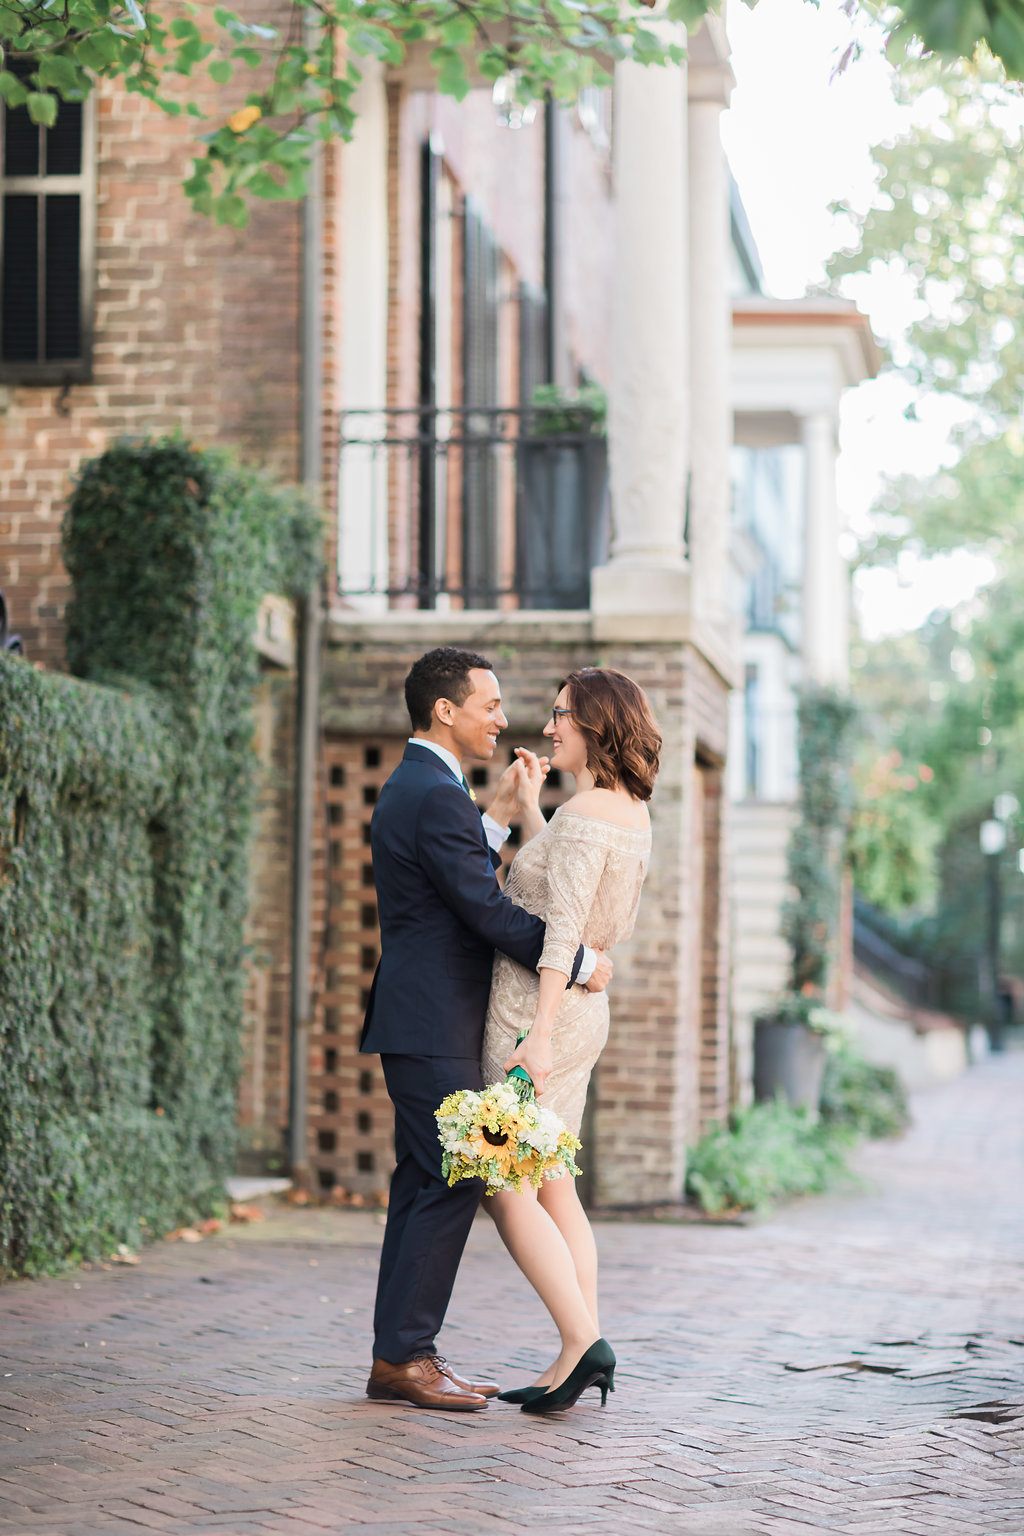 Savannah elopement photographer